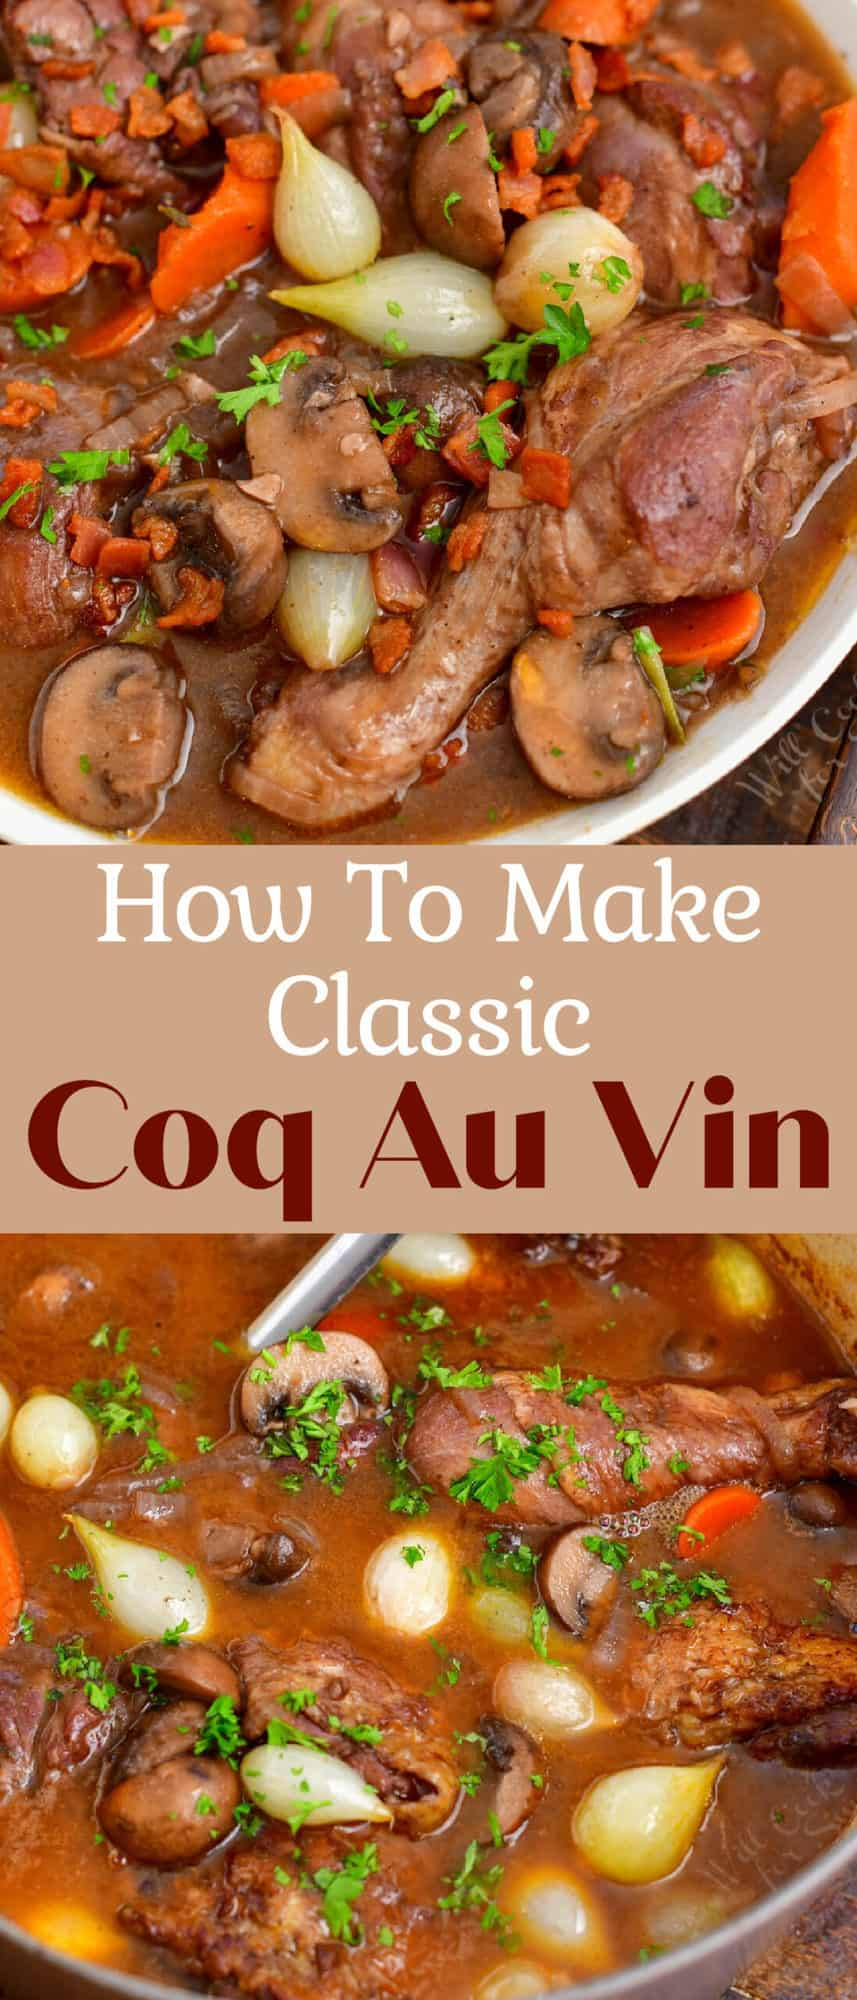 titled photo collage (and shown): How To Make Classic Coq Au Vin